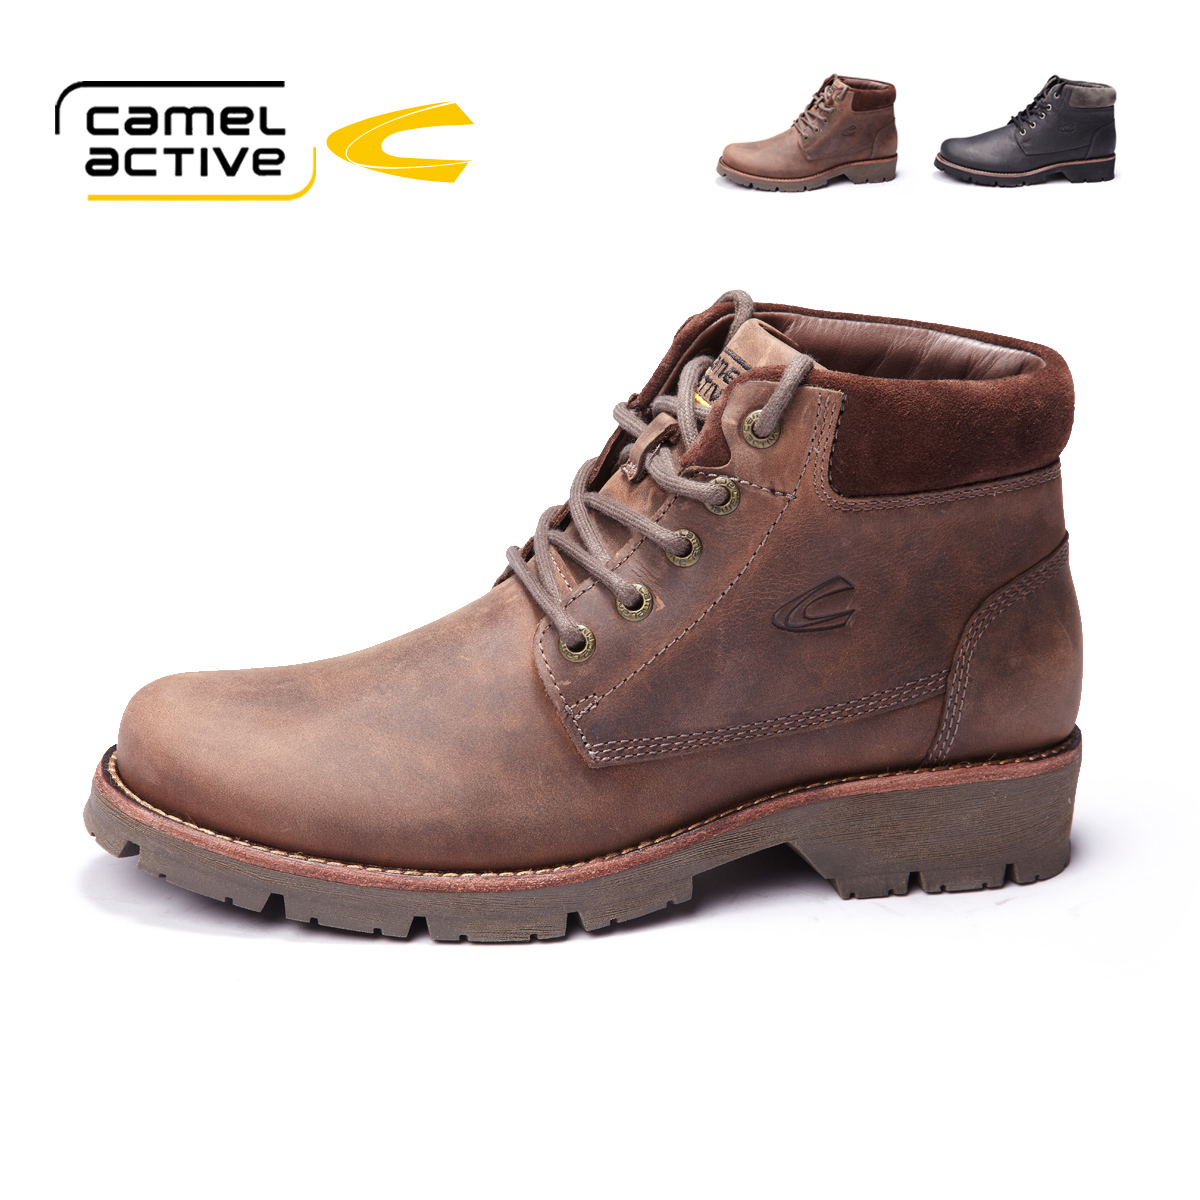 1000 Images About Camel Active On Pinterest Tibet Activewear And Climbing Pants